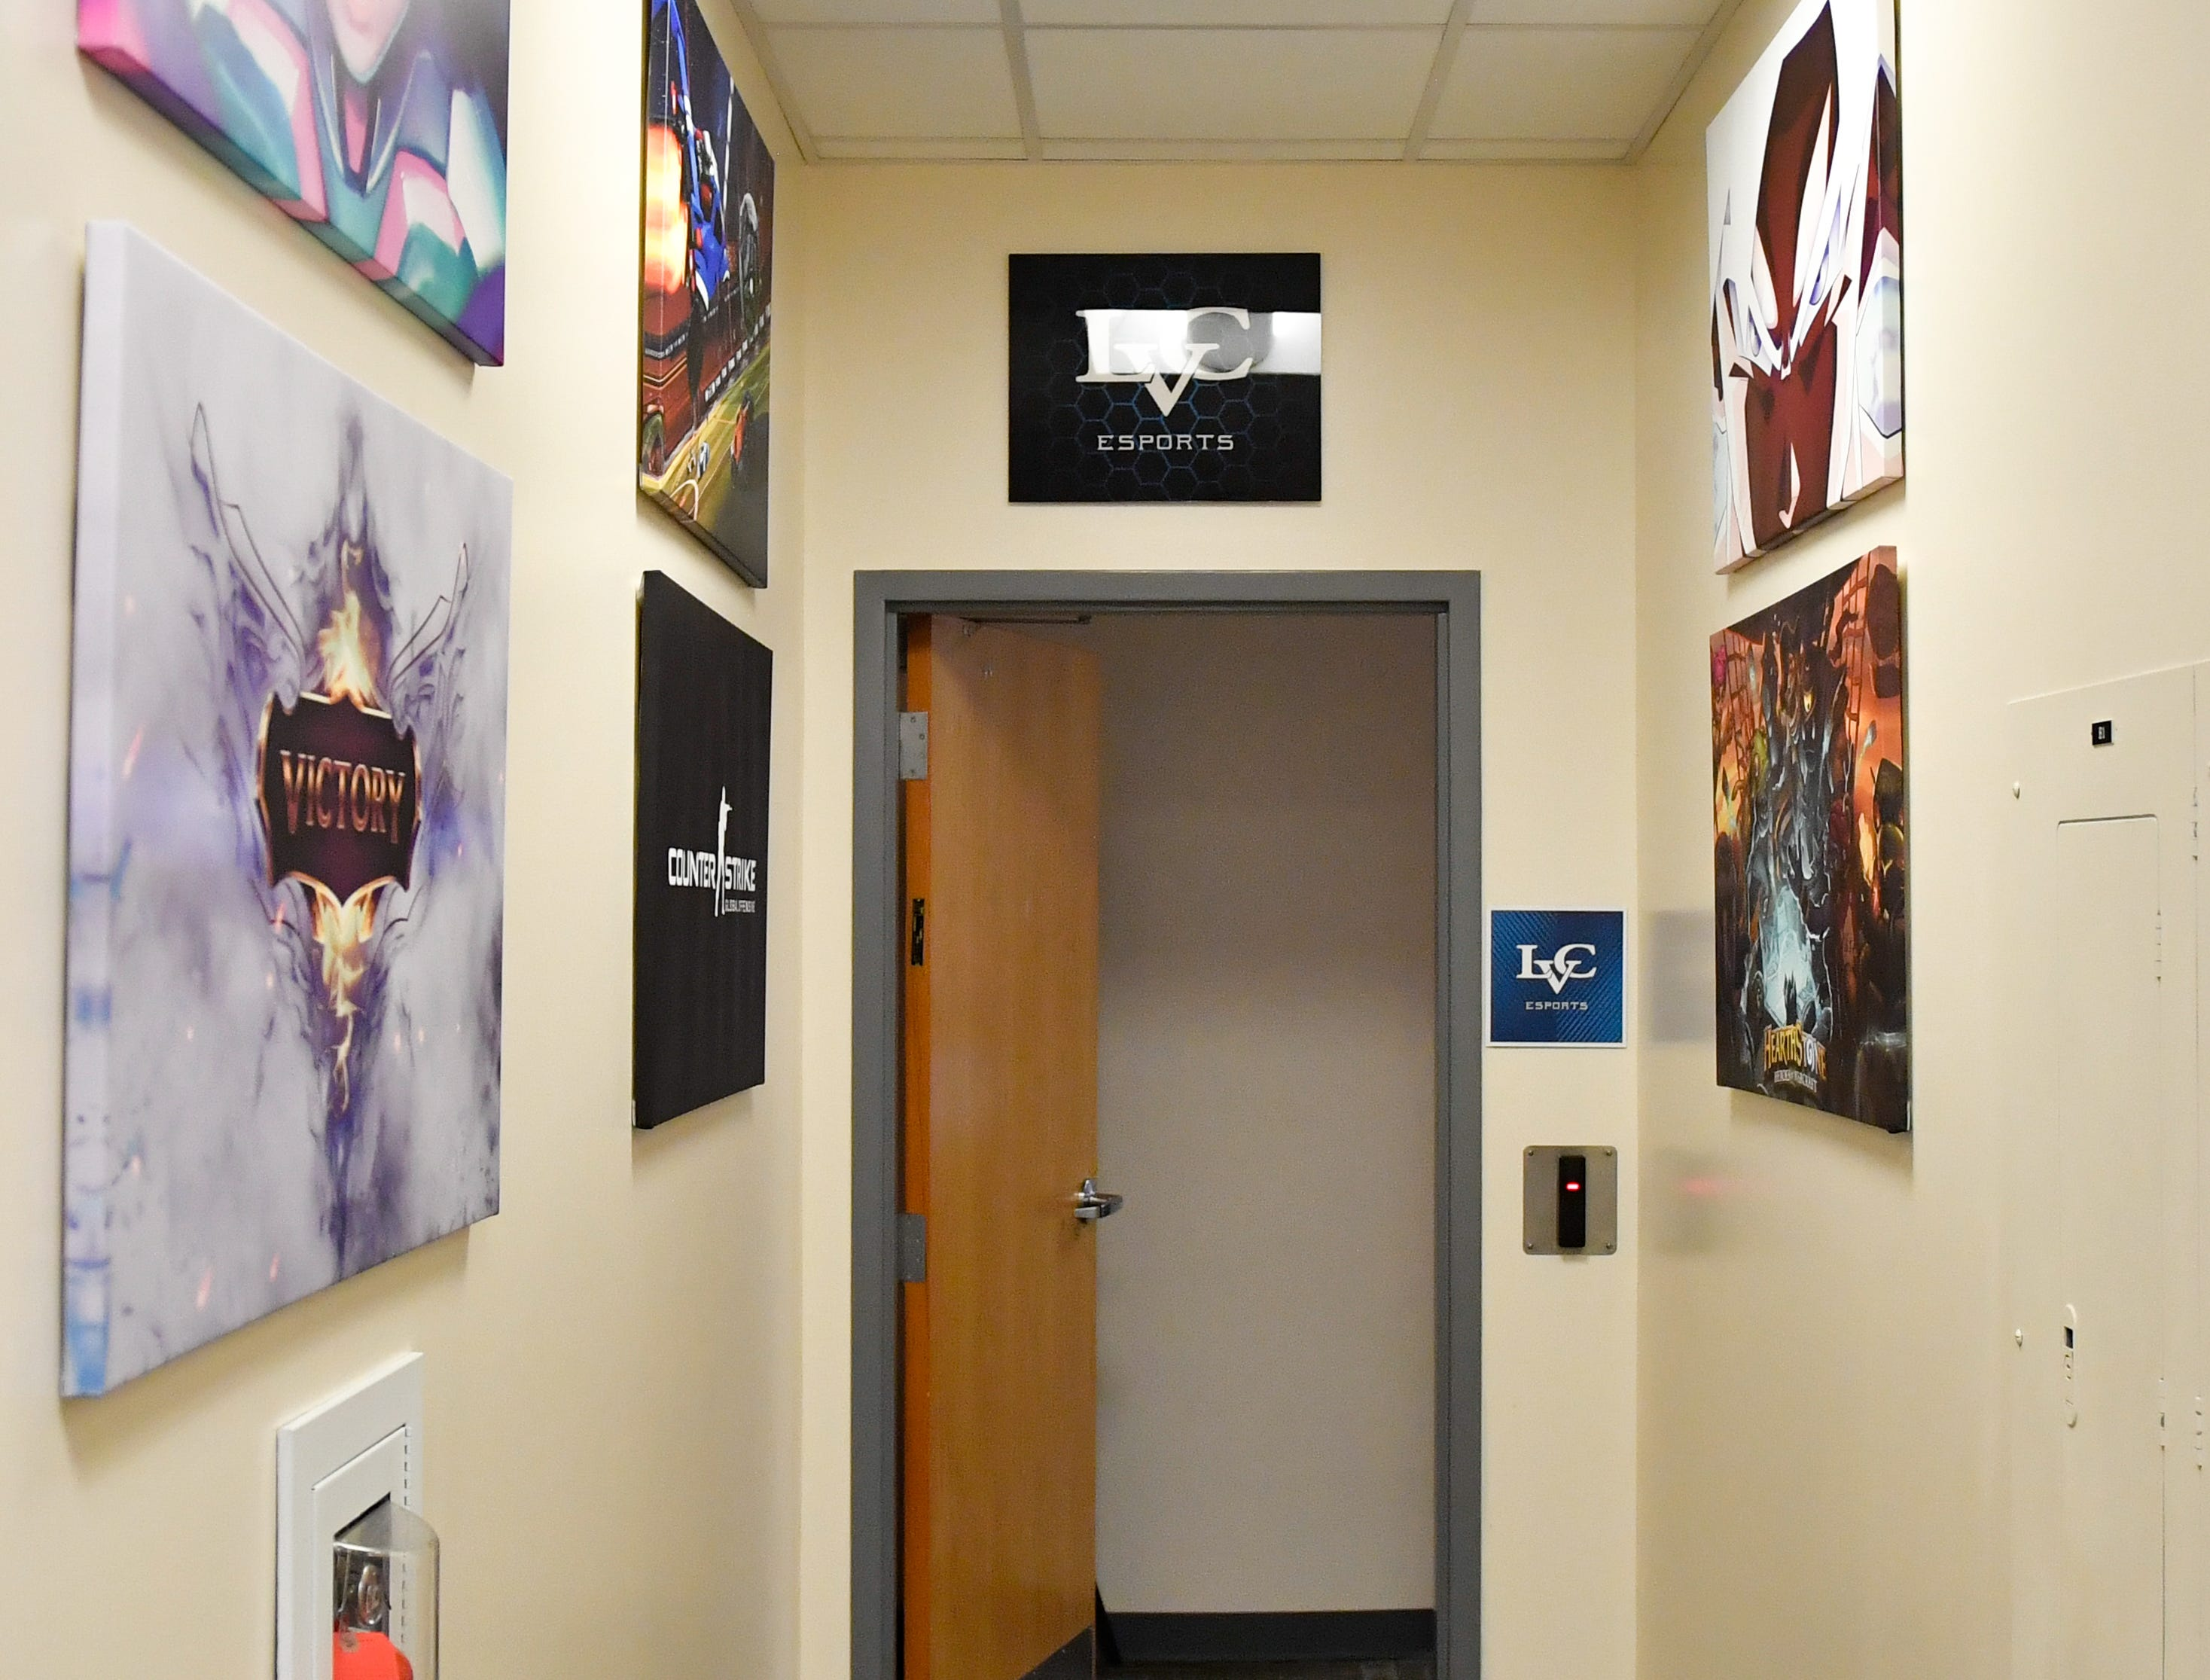 The lower level of Clyde A. Lynch Memorial Hall is the home of the LVC's varsity Esports team. The walls leading up to the door are decorated with canvases of video game covers and characters.